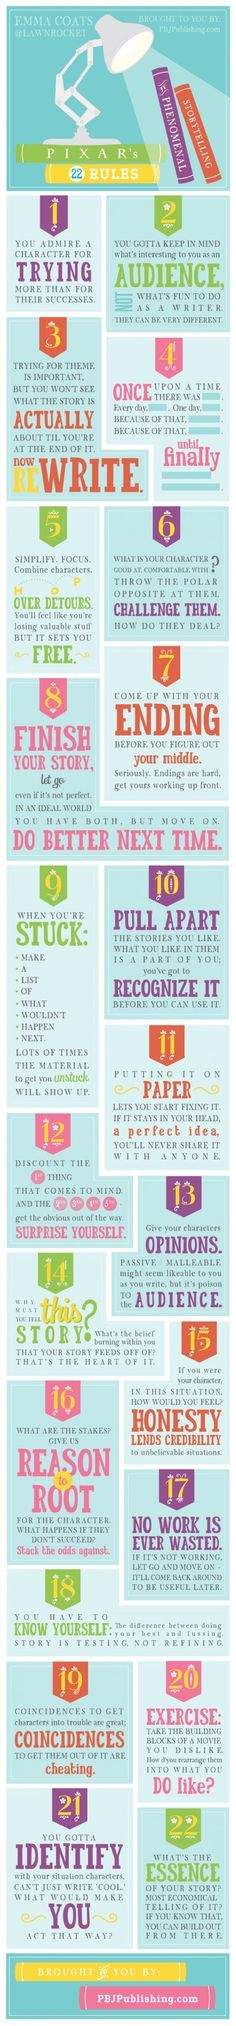 22 rule, graphic, storytelling, writing tips, creative writing